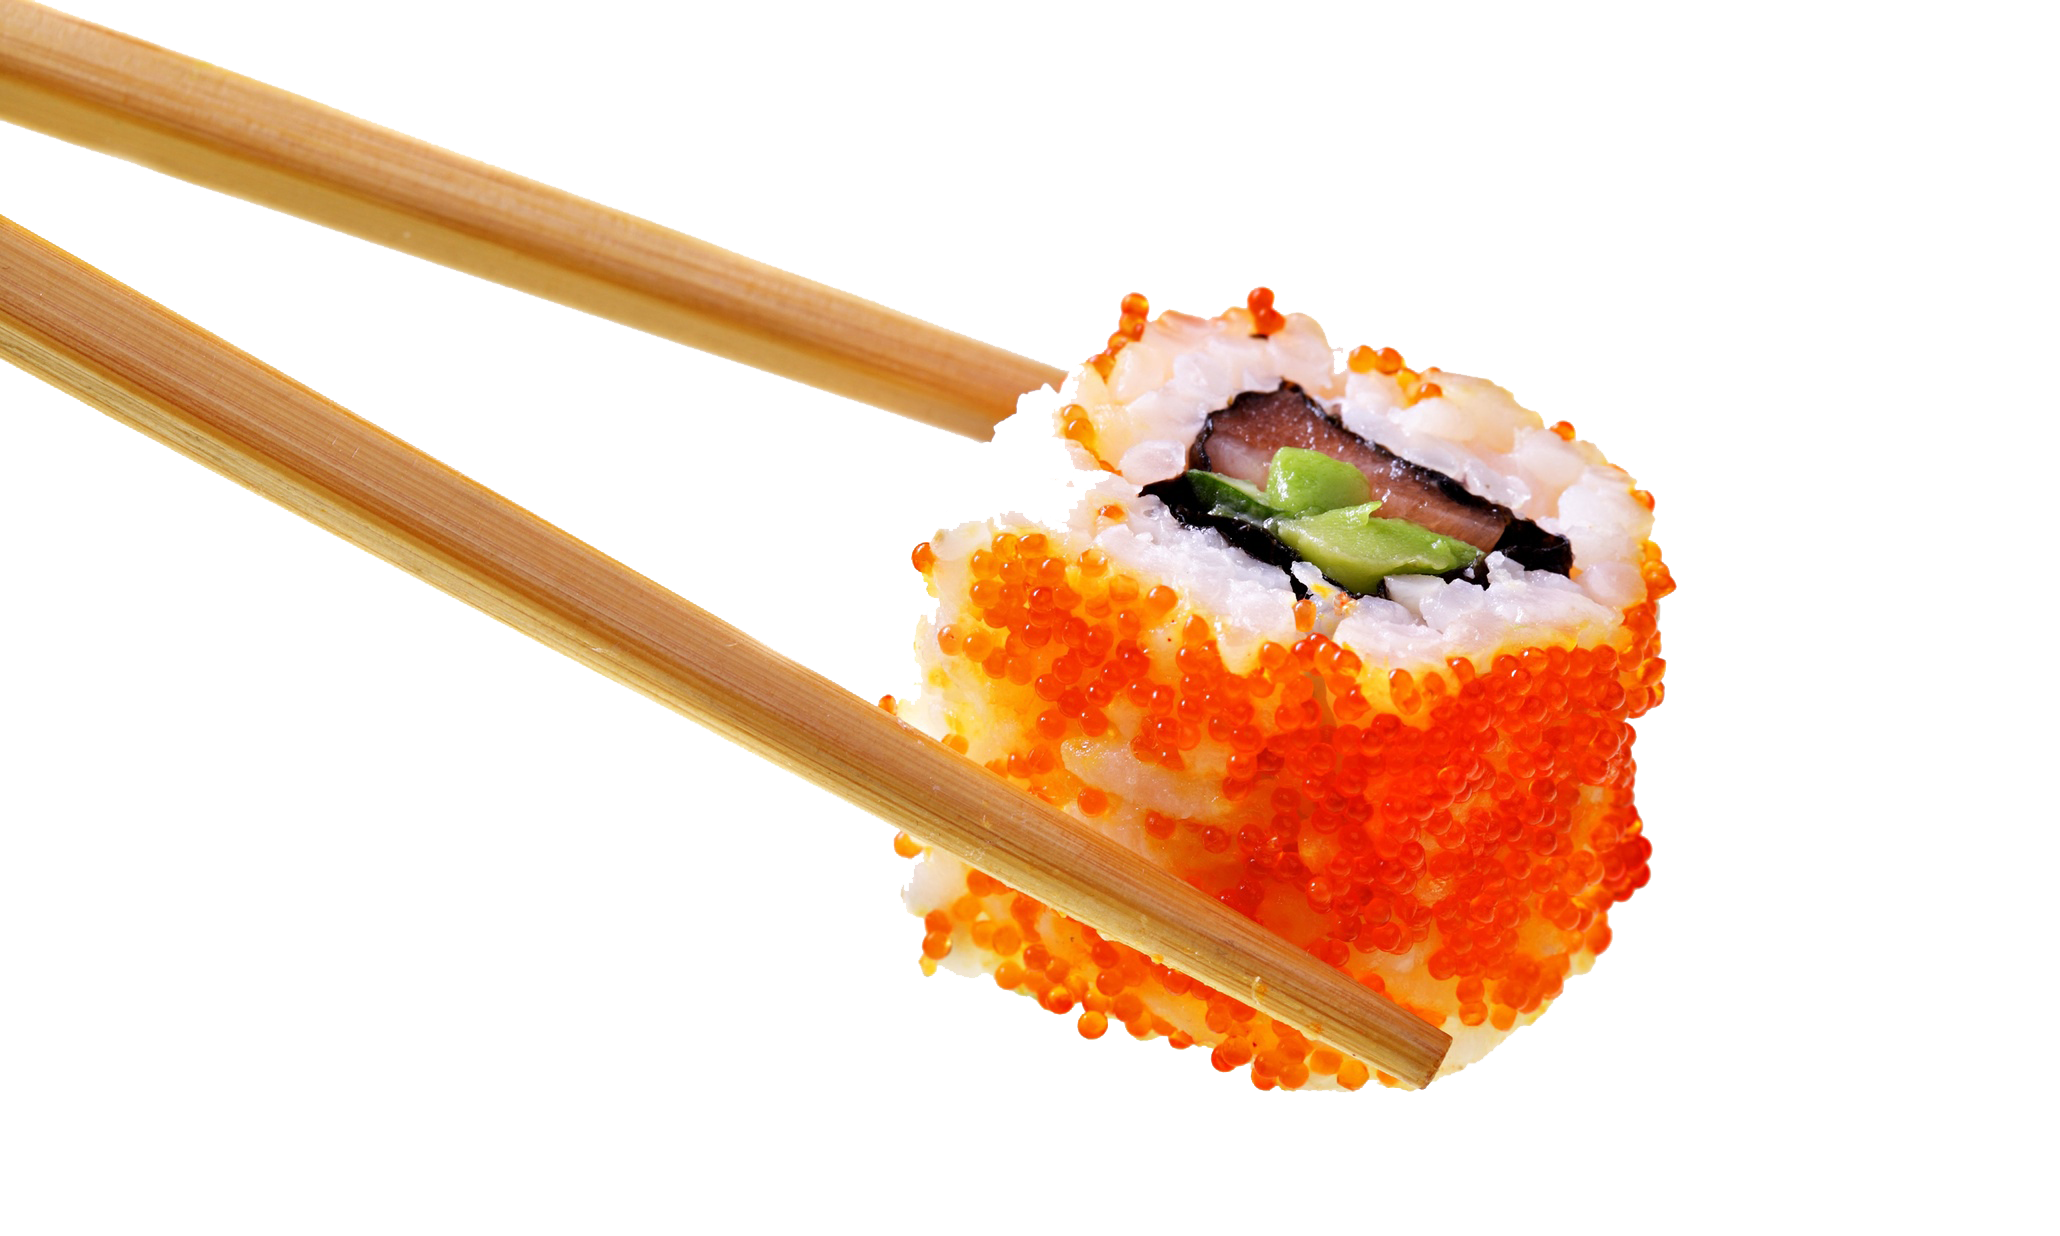 Cuisine sashimi california roll. Japanese clipart sushi chef